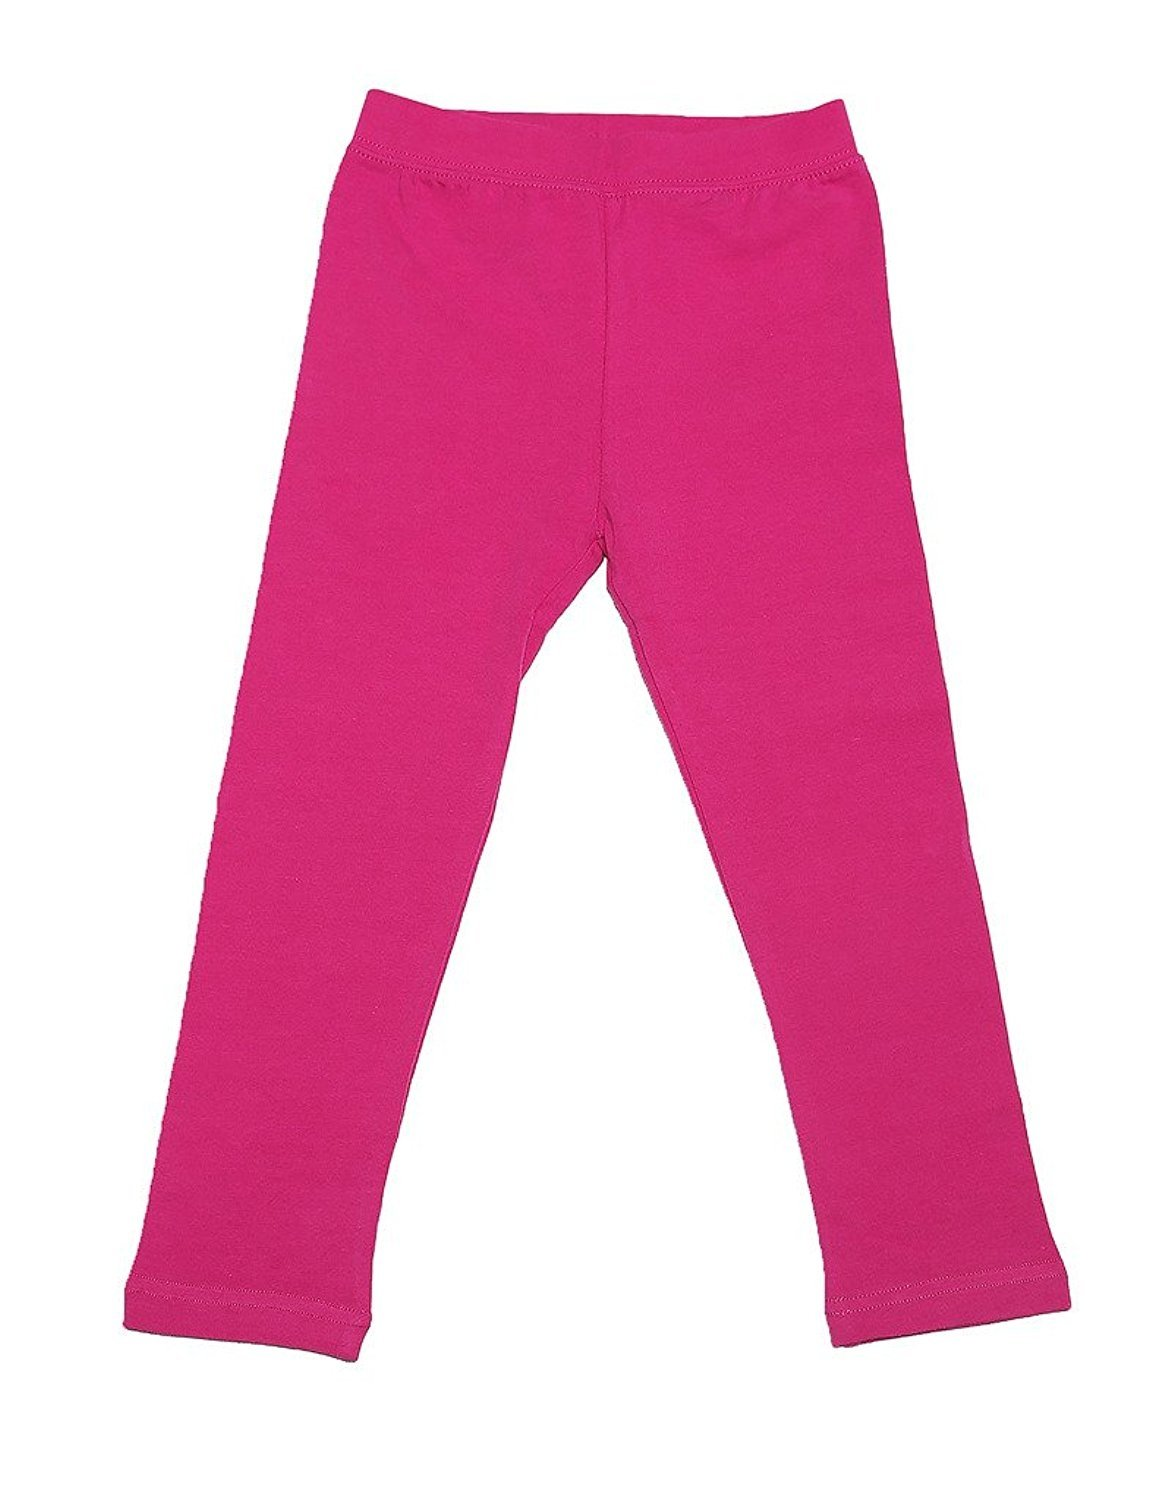 Leveret Girls Legging Cotton Ankle Length Kids & Toddler Pants (Toddler-14 Years) Variety of Colors